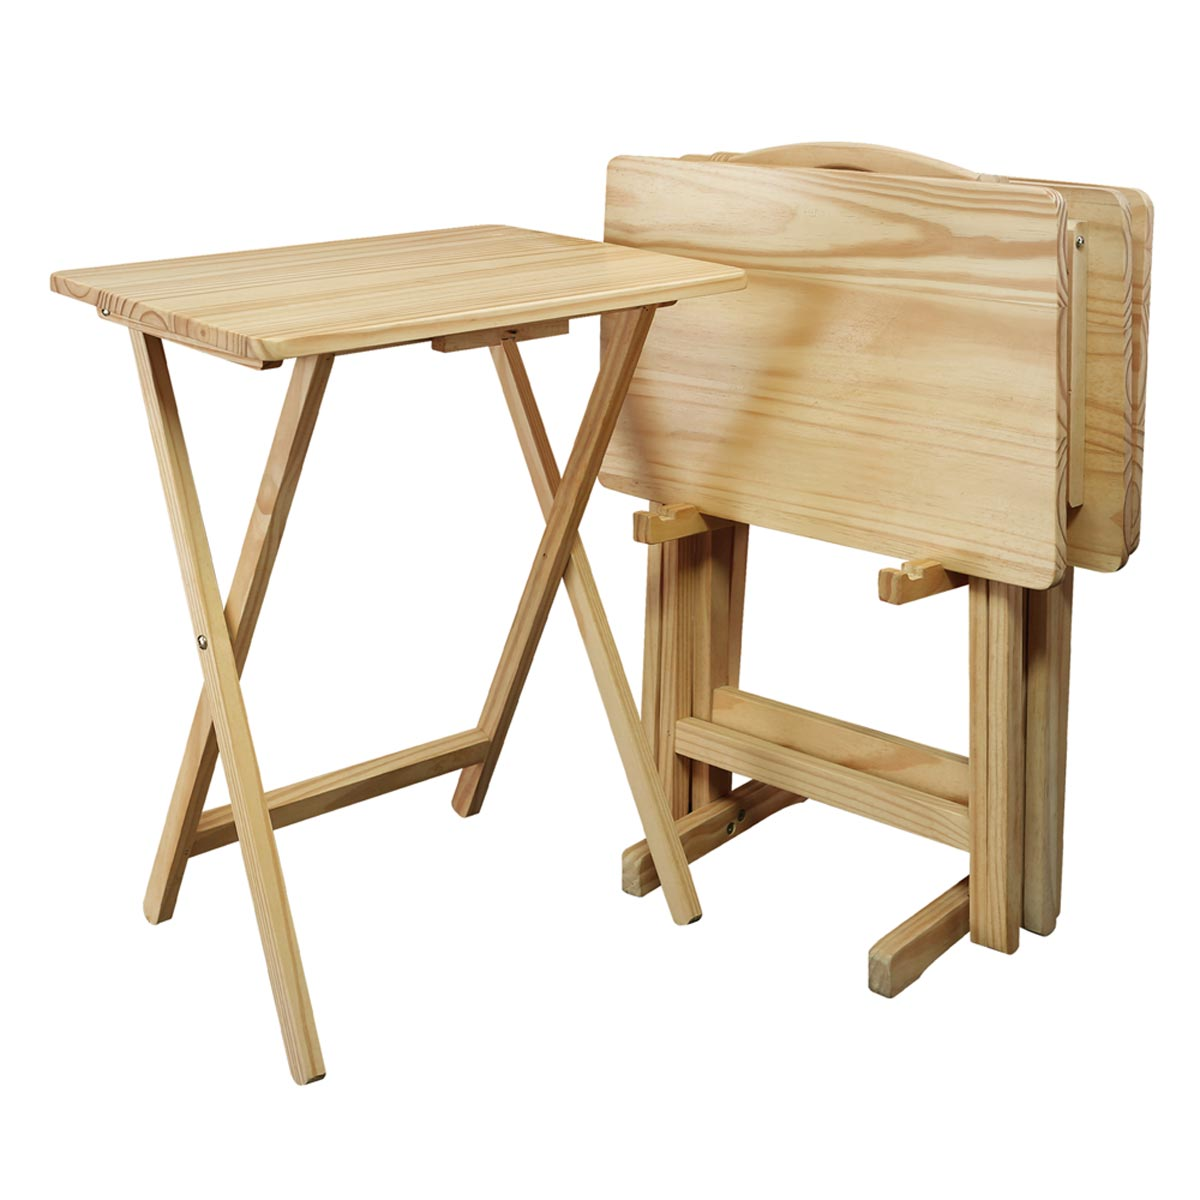 5-Piece Solid Wood Folding Tray Table Set with 4 Tables & 1 Stand